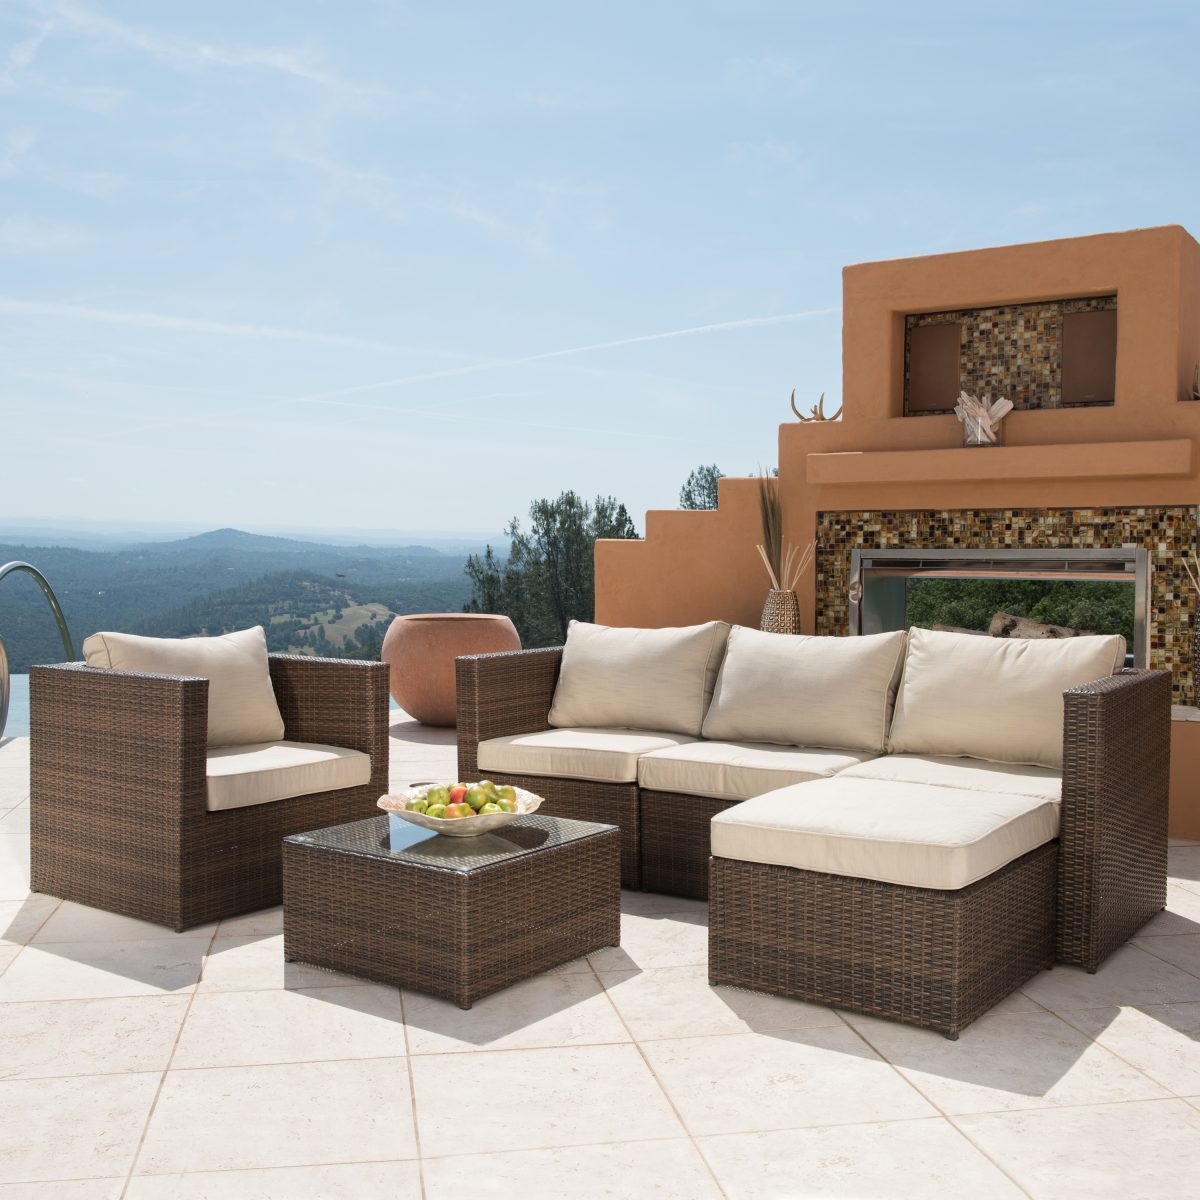 Starsong Furniture on Fine Living Patio Set id=12954